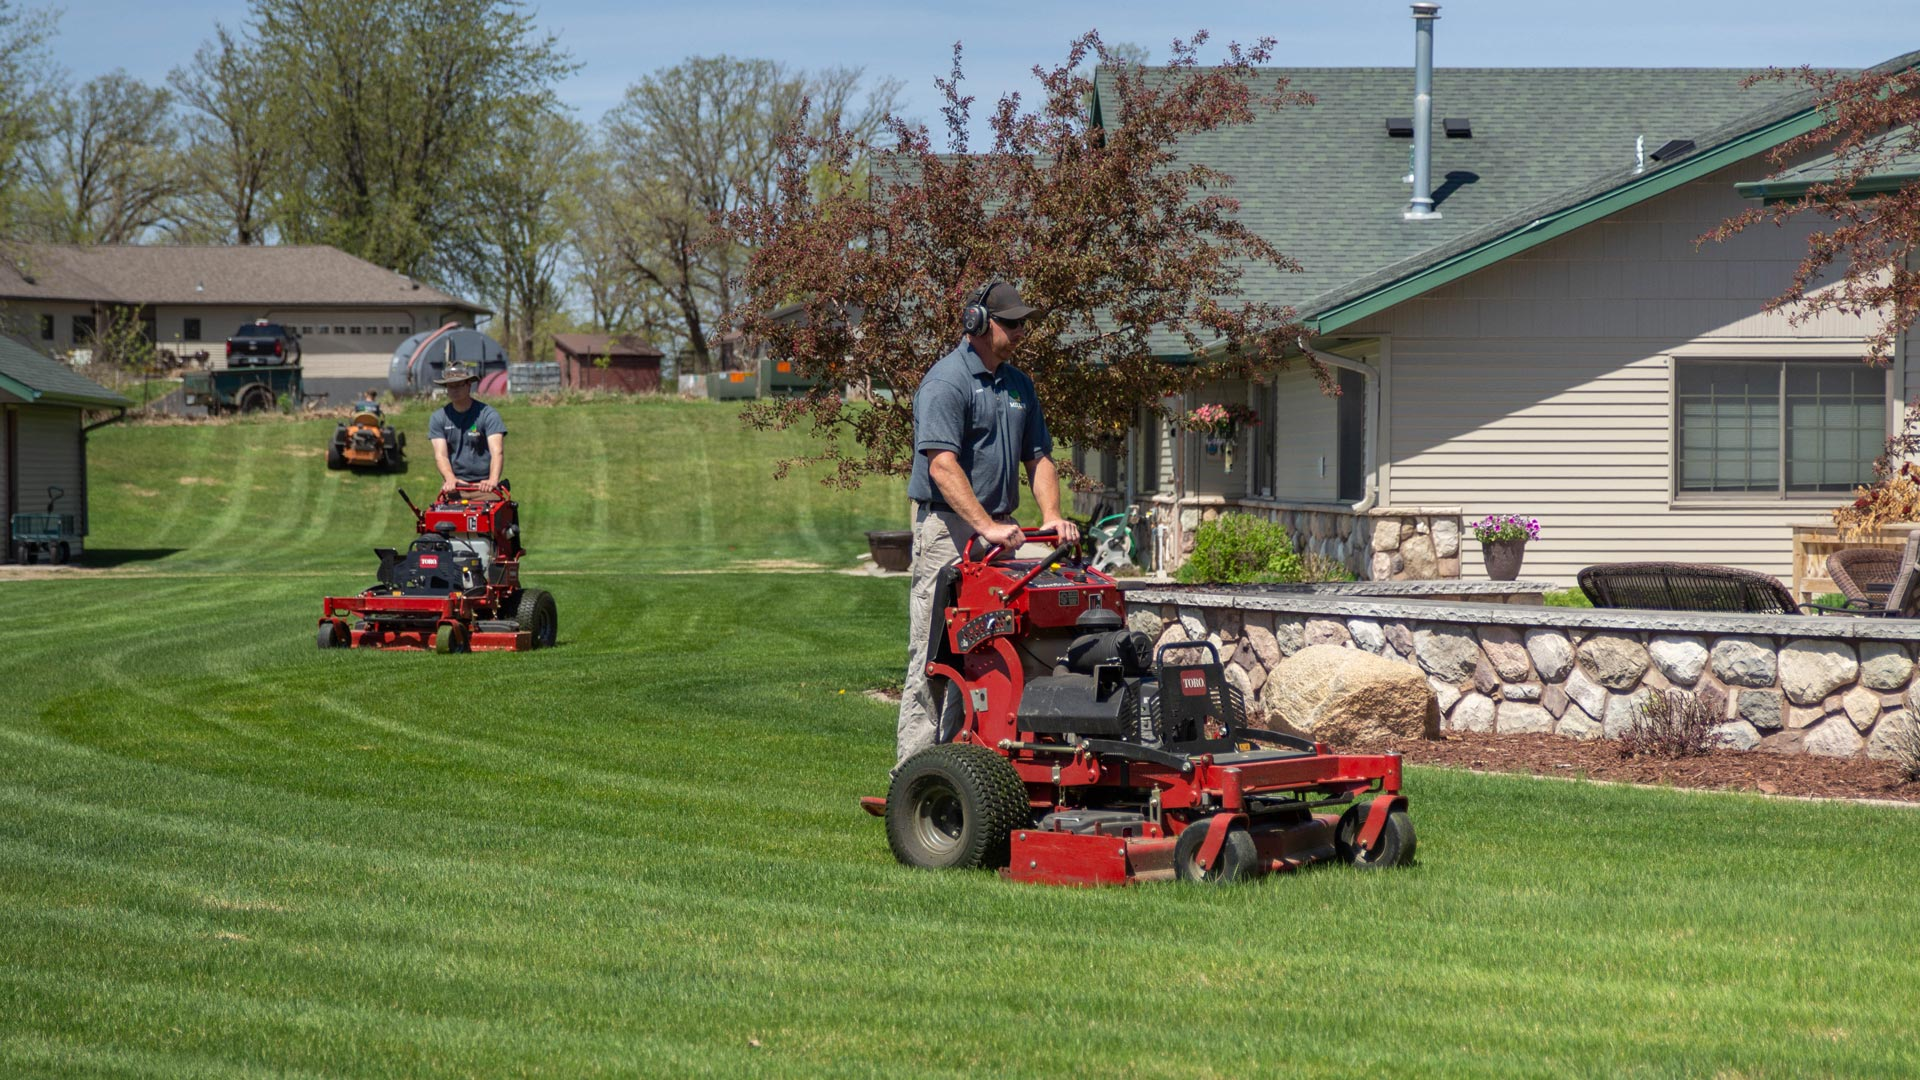 Property in Detroit Lakes, MN that has a regular lawn mowing and maintenance package with Miller Yard Care & Construction.